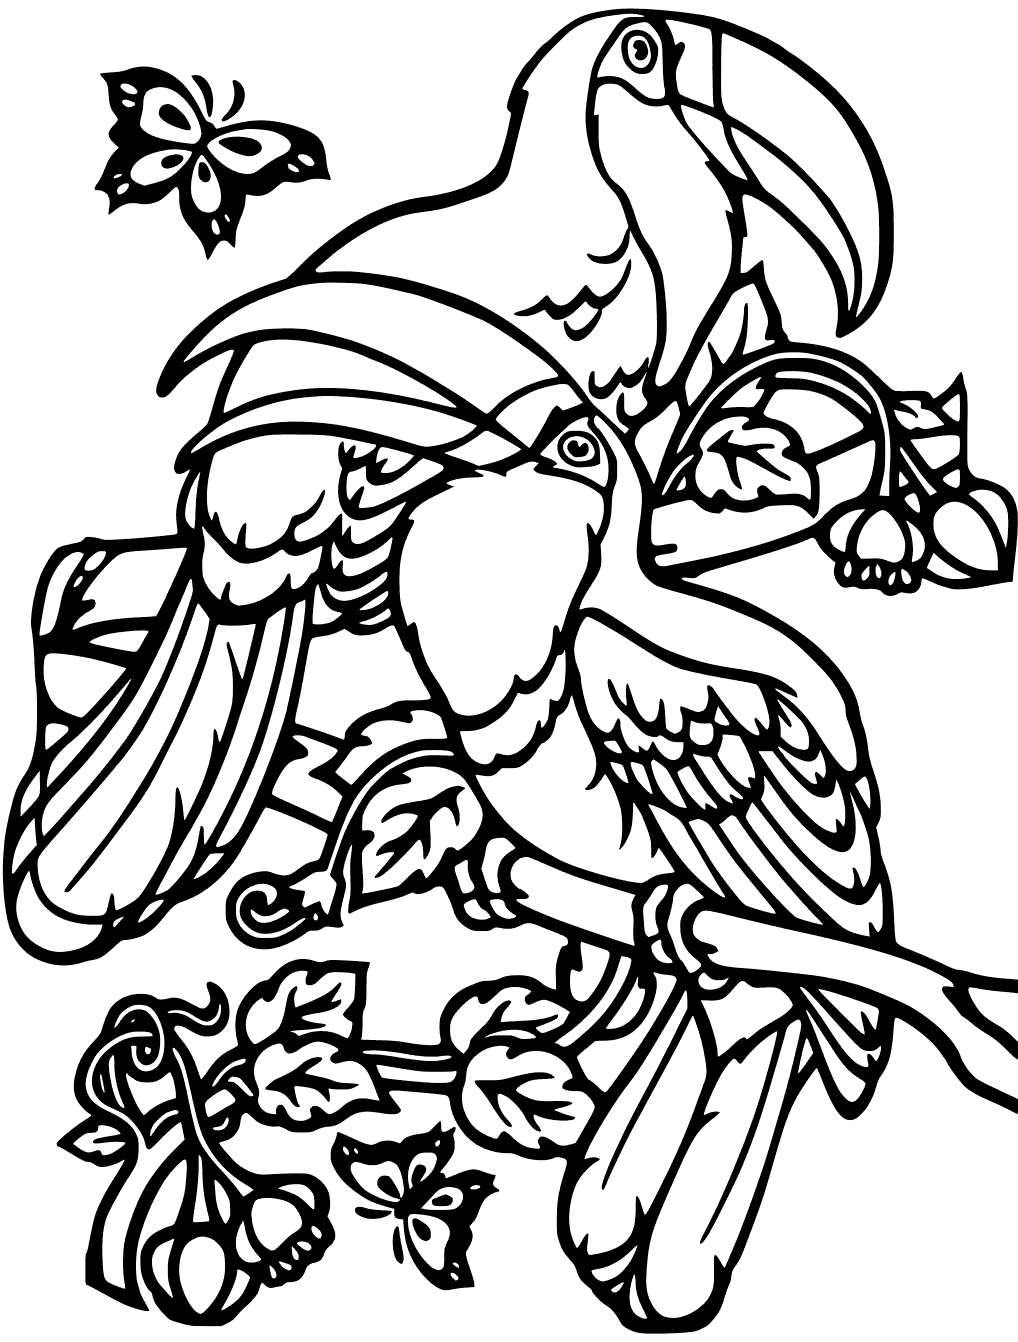 Fun Toucans Coloring Page